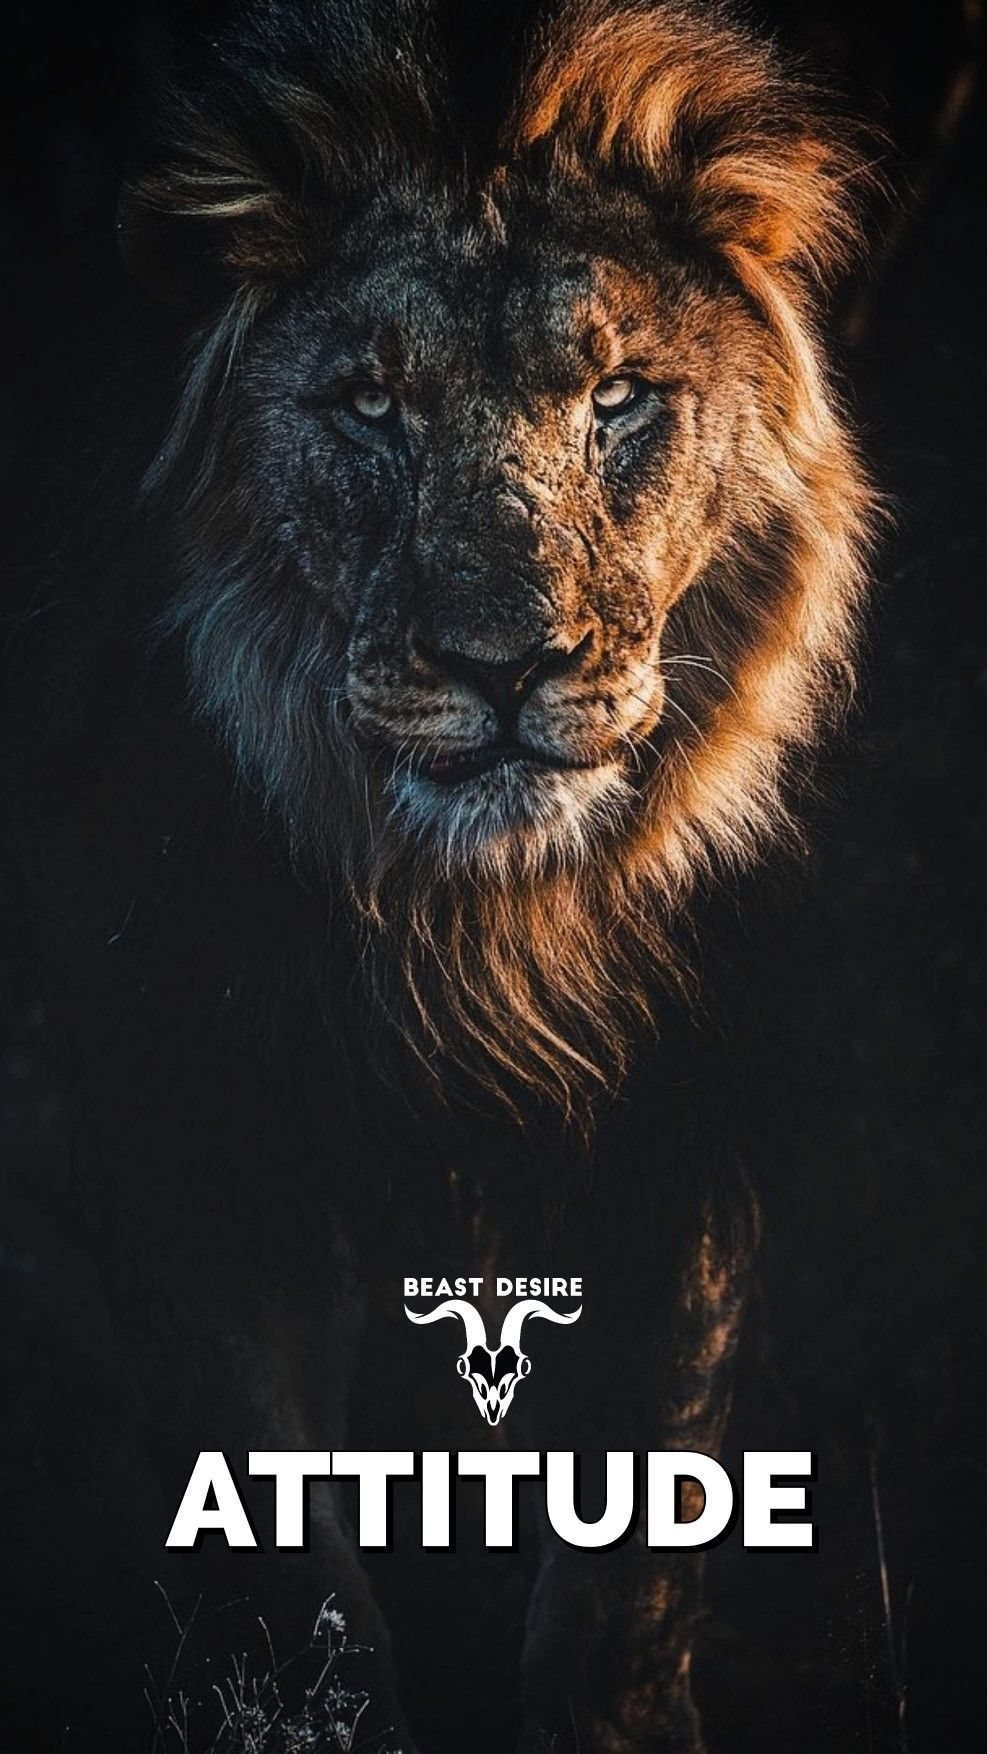 Beast Desire Wallpaper Beast Mode Quotes Lion Quotes Beast Wallpaper